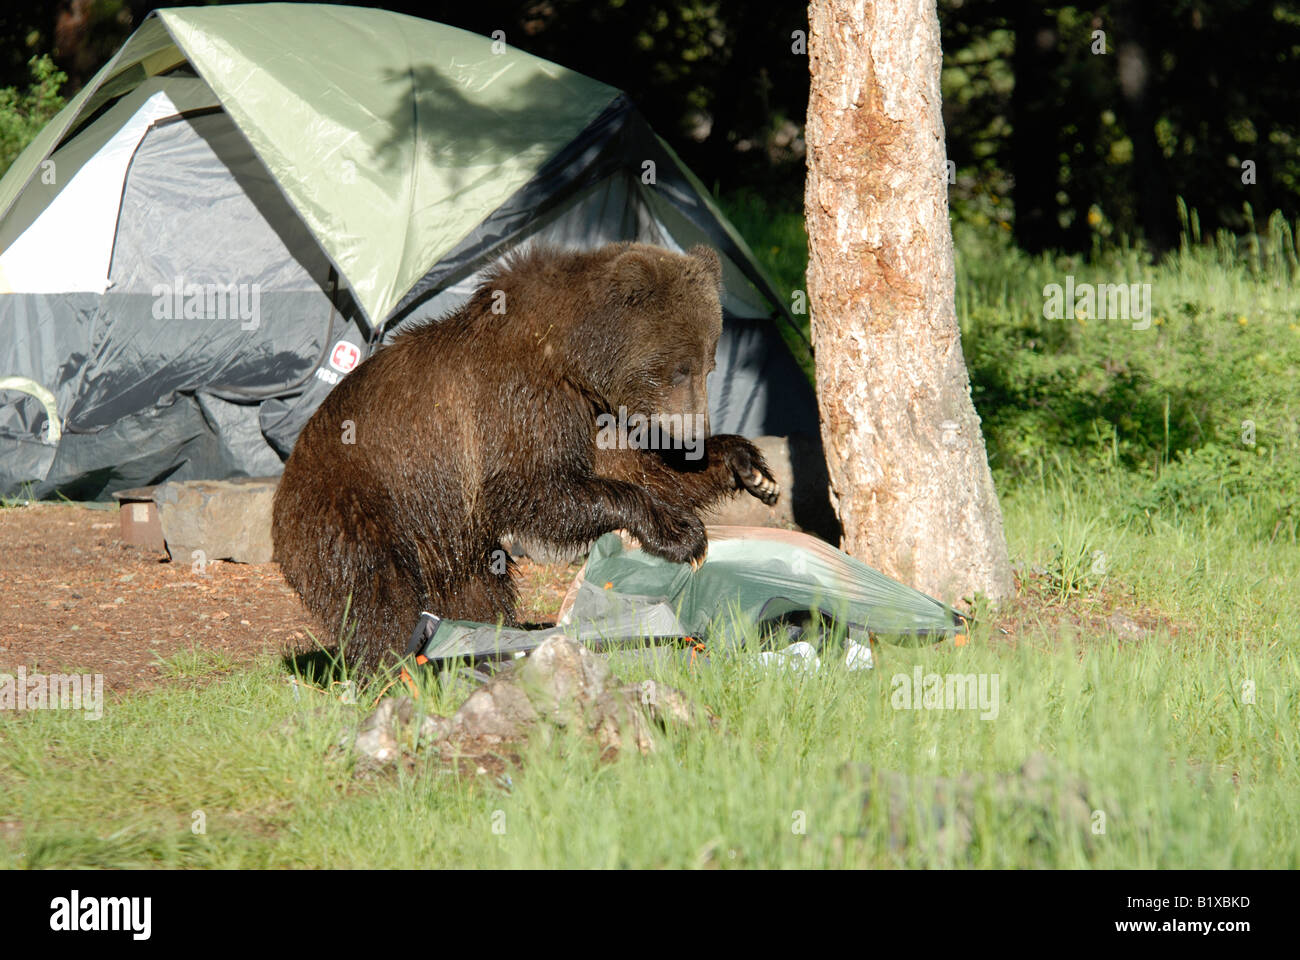 Stock photo of a grizzly bear destroying a tent in a c&ground in Yellowstone National Park & Stock photo of a grizzly bear destroying a tent in a campground in ...